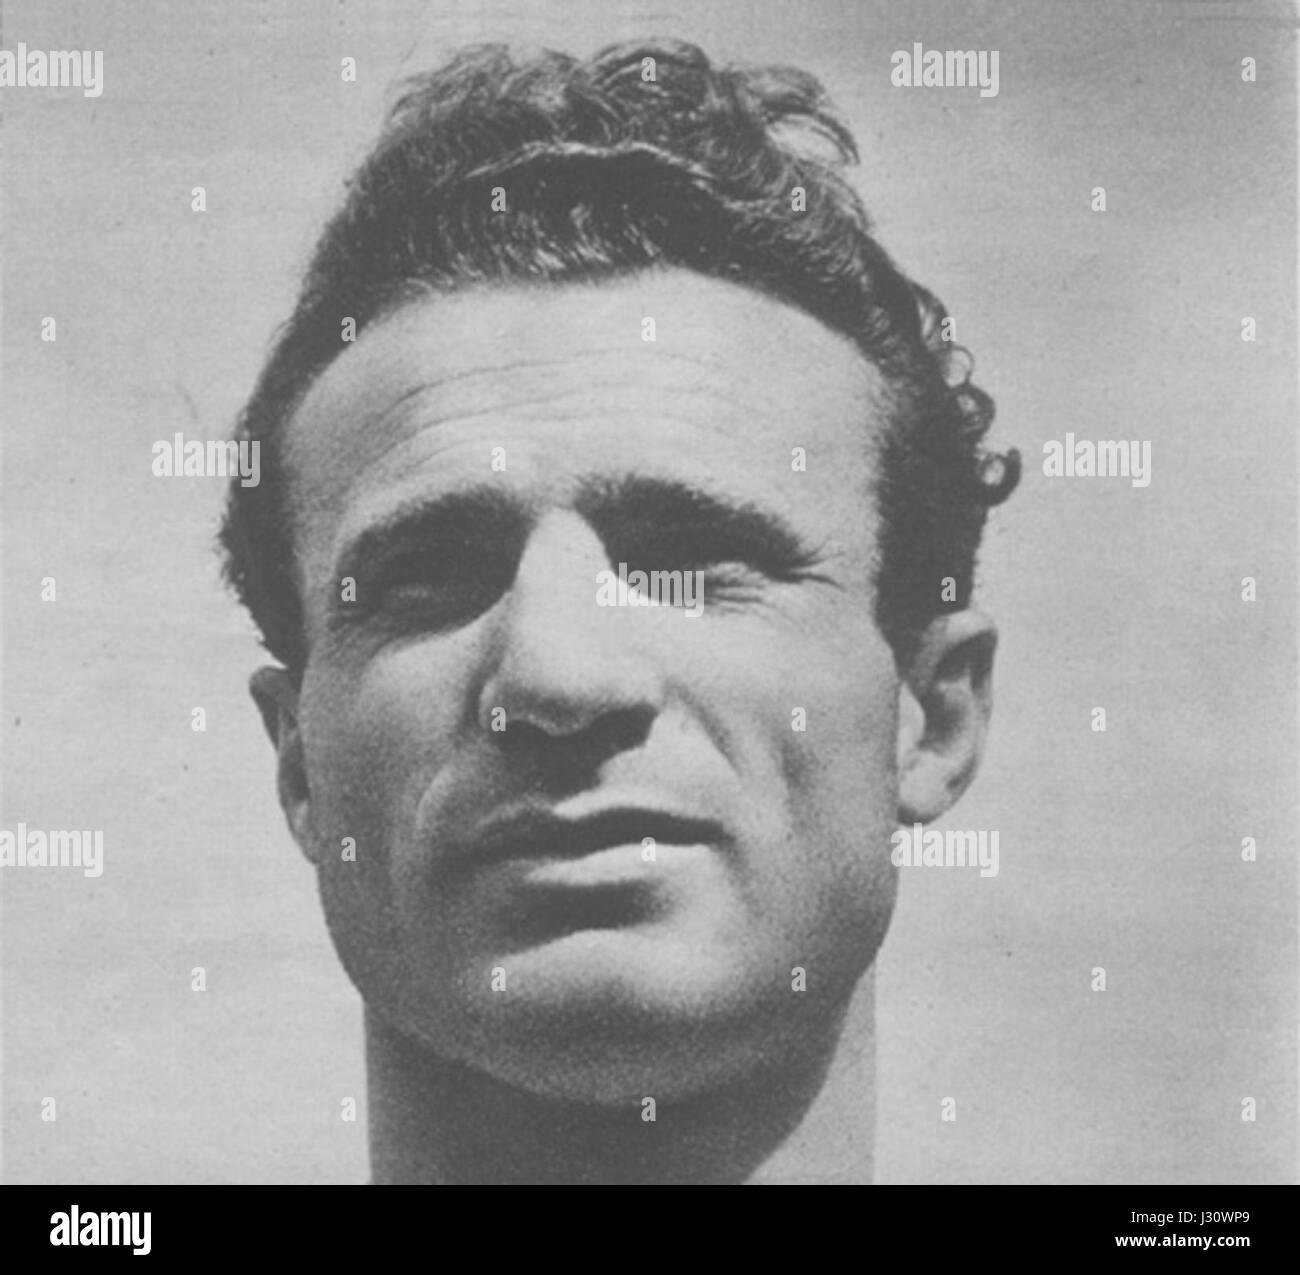 Mazzola Black and White Stock s & Alamy